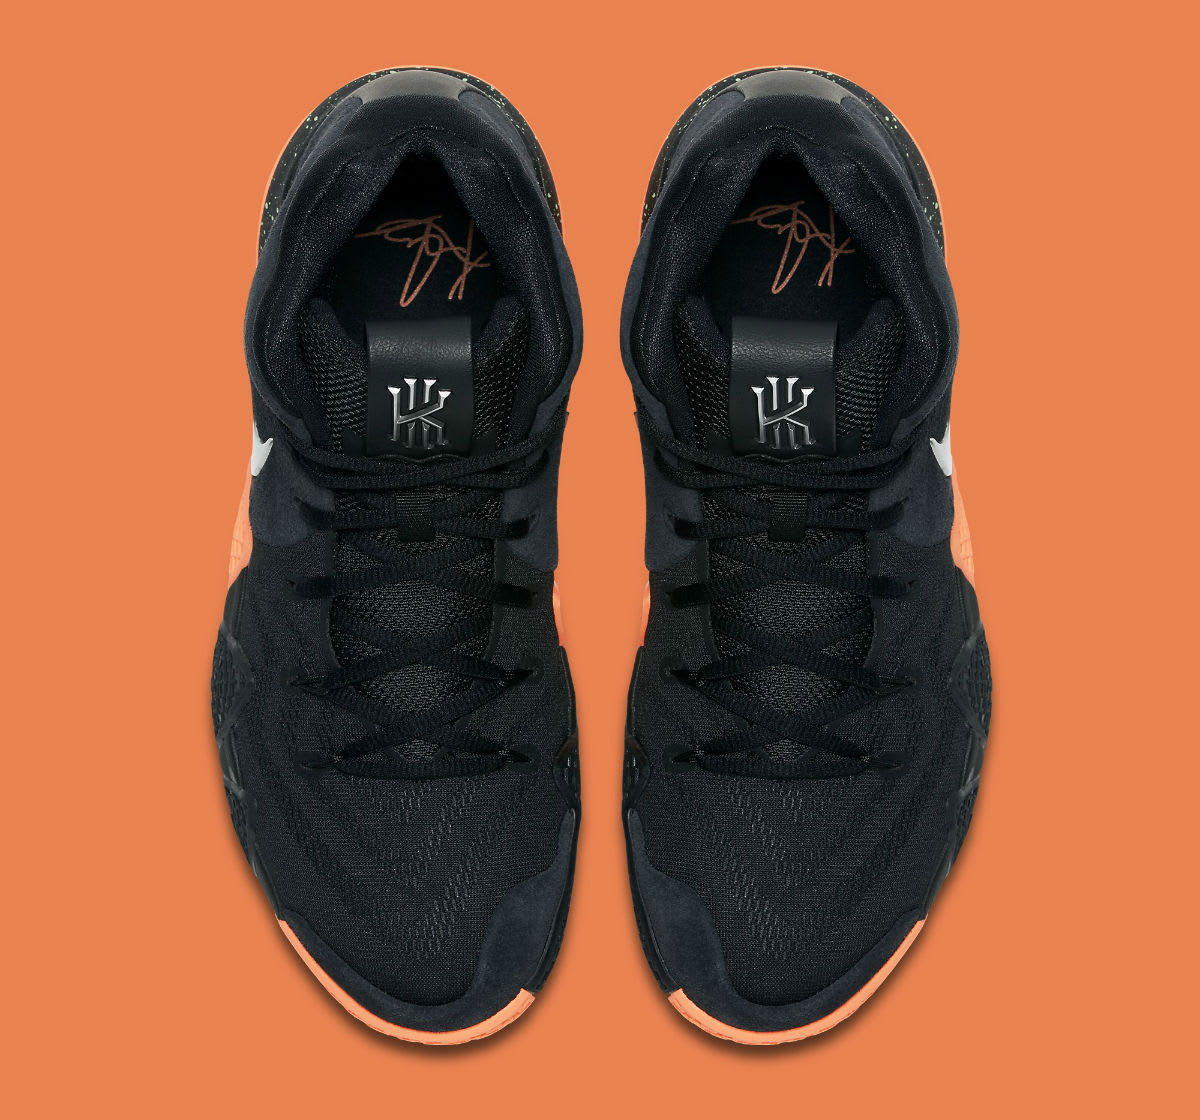 a160f450247 ... mens irving 943806 010 0ea5b 5918c  greece nike kyrie 4 black silver  orange release date 943806 010 top 20420 4d485